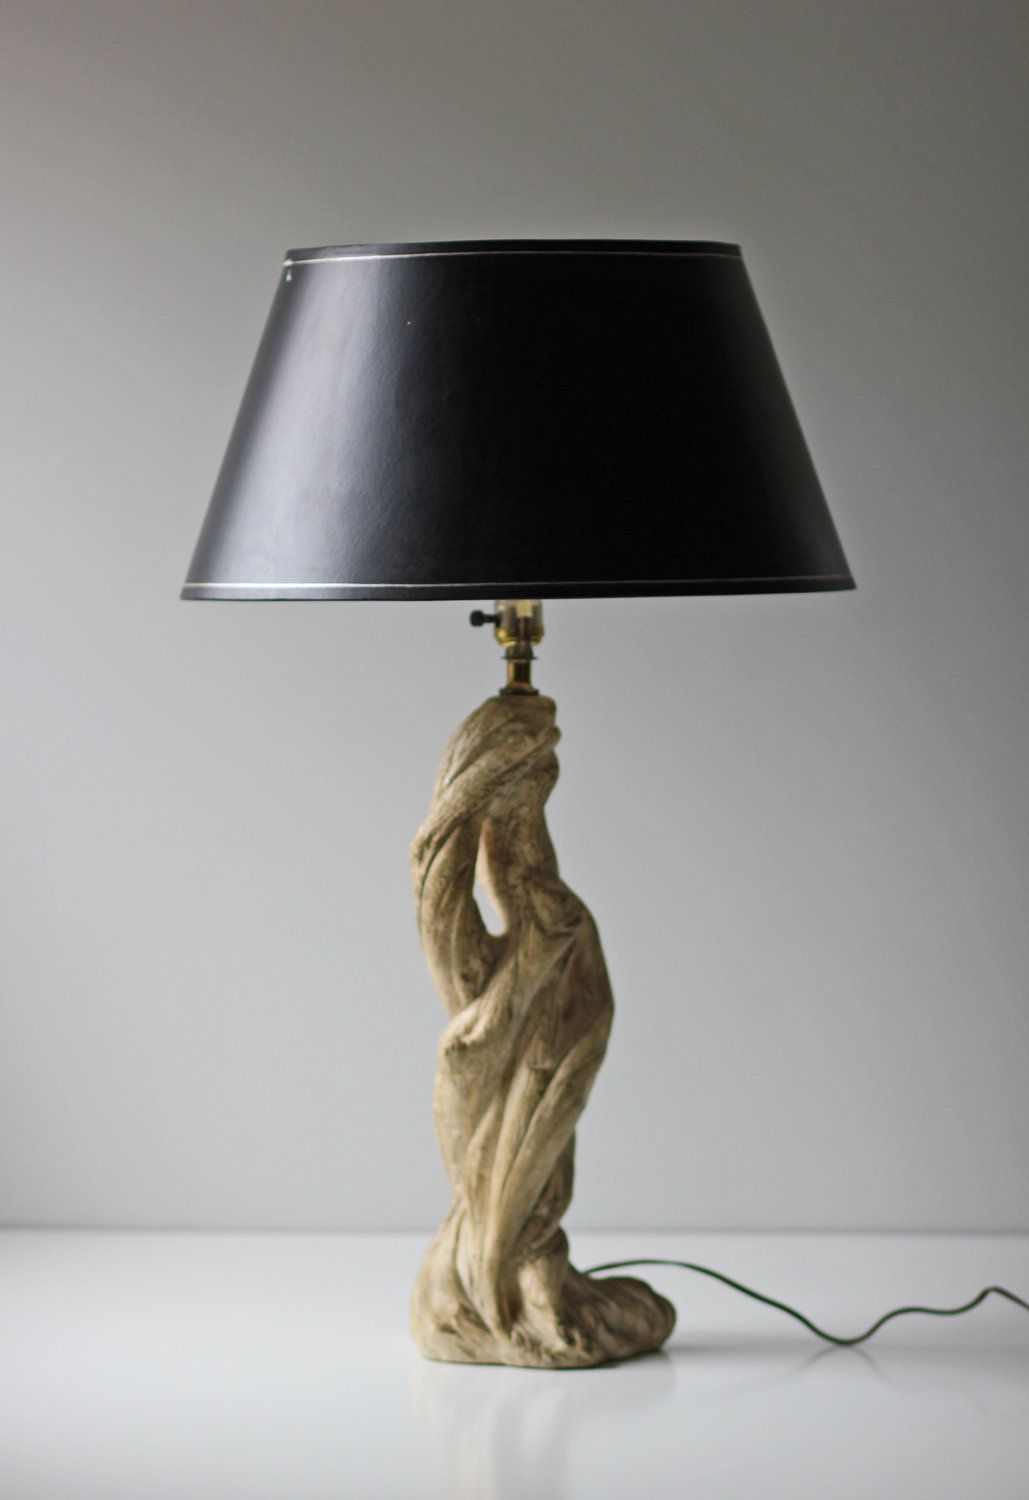 White Tree Branch Table Lamp Unique Vintage Chalkware Lamp Small Desk Lamp Lamp Lamps For Sale